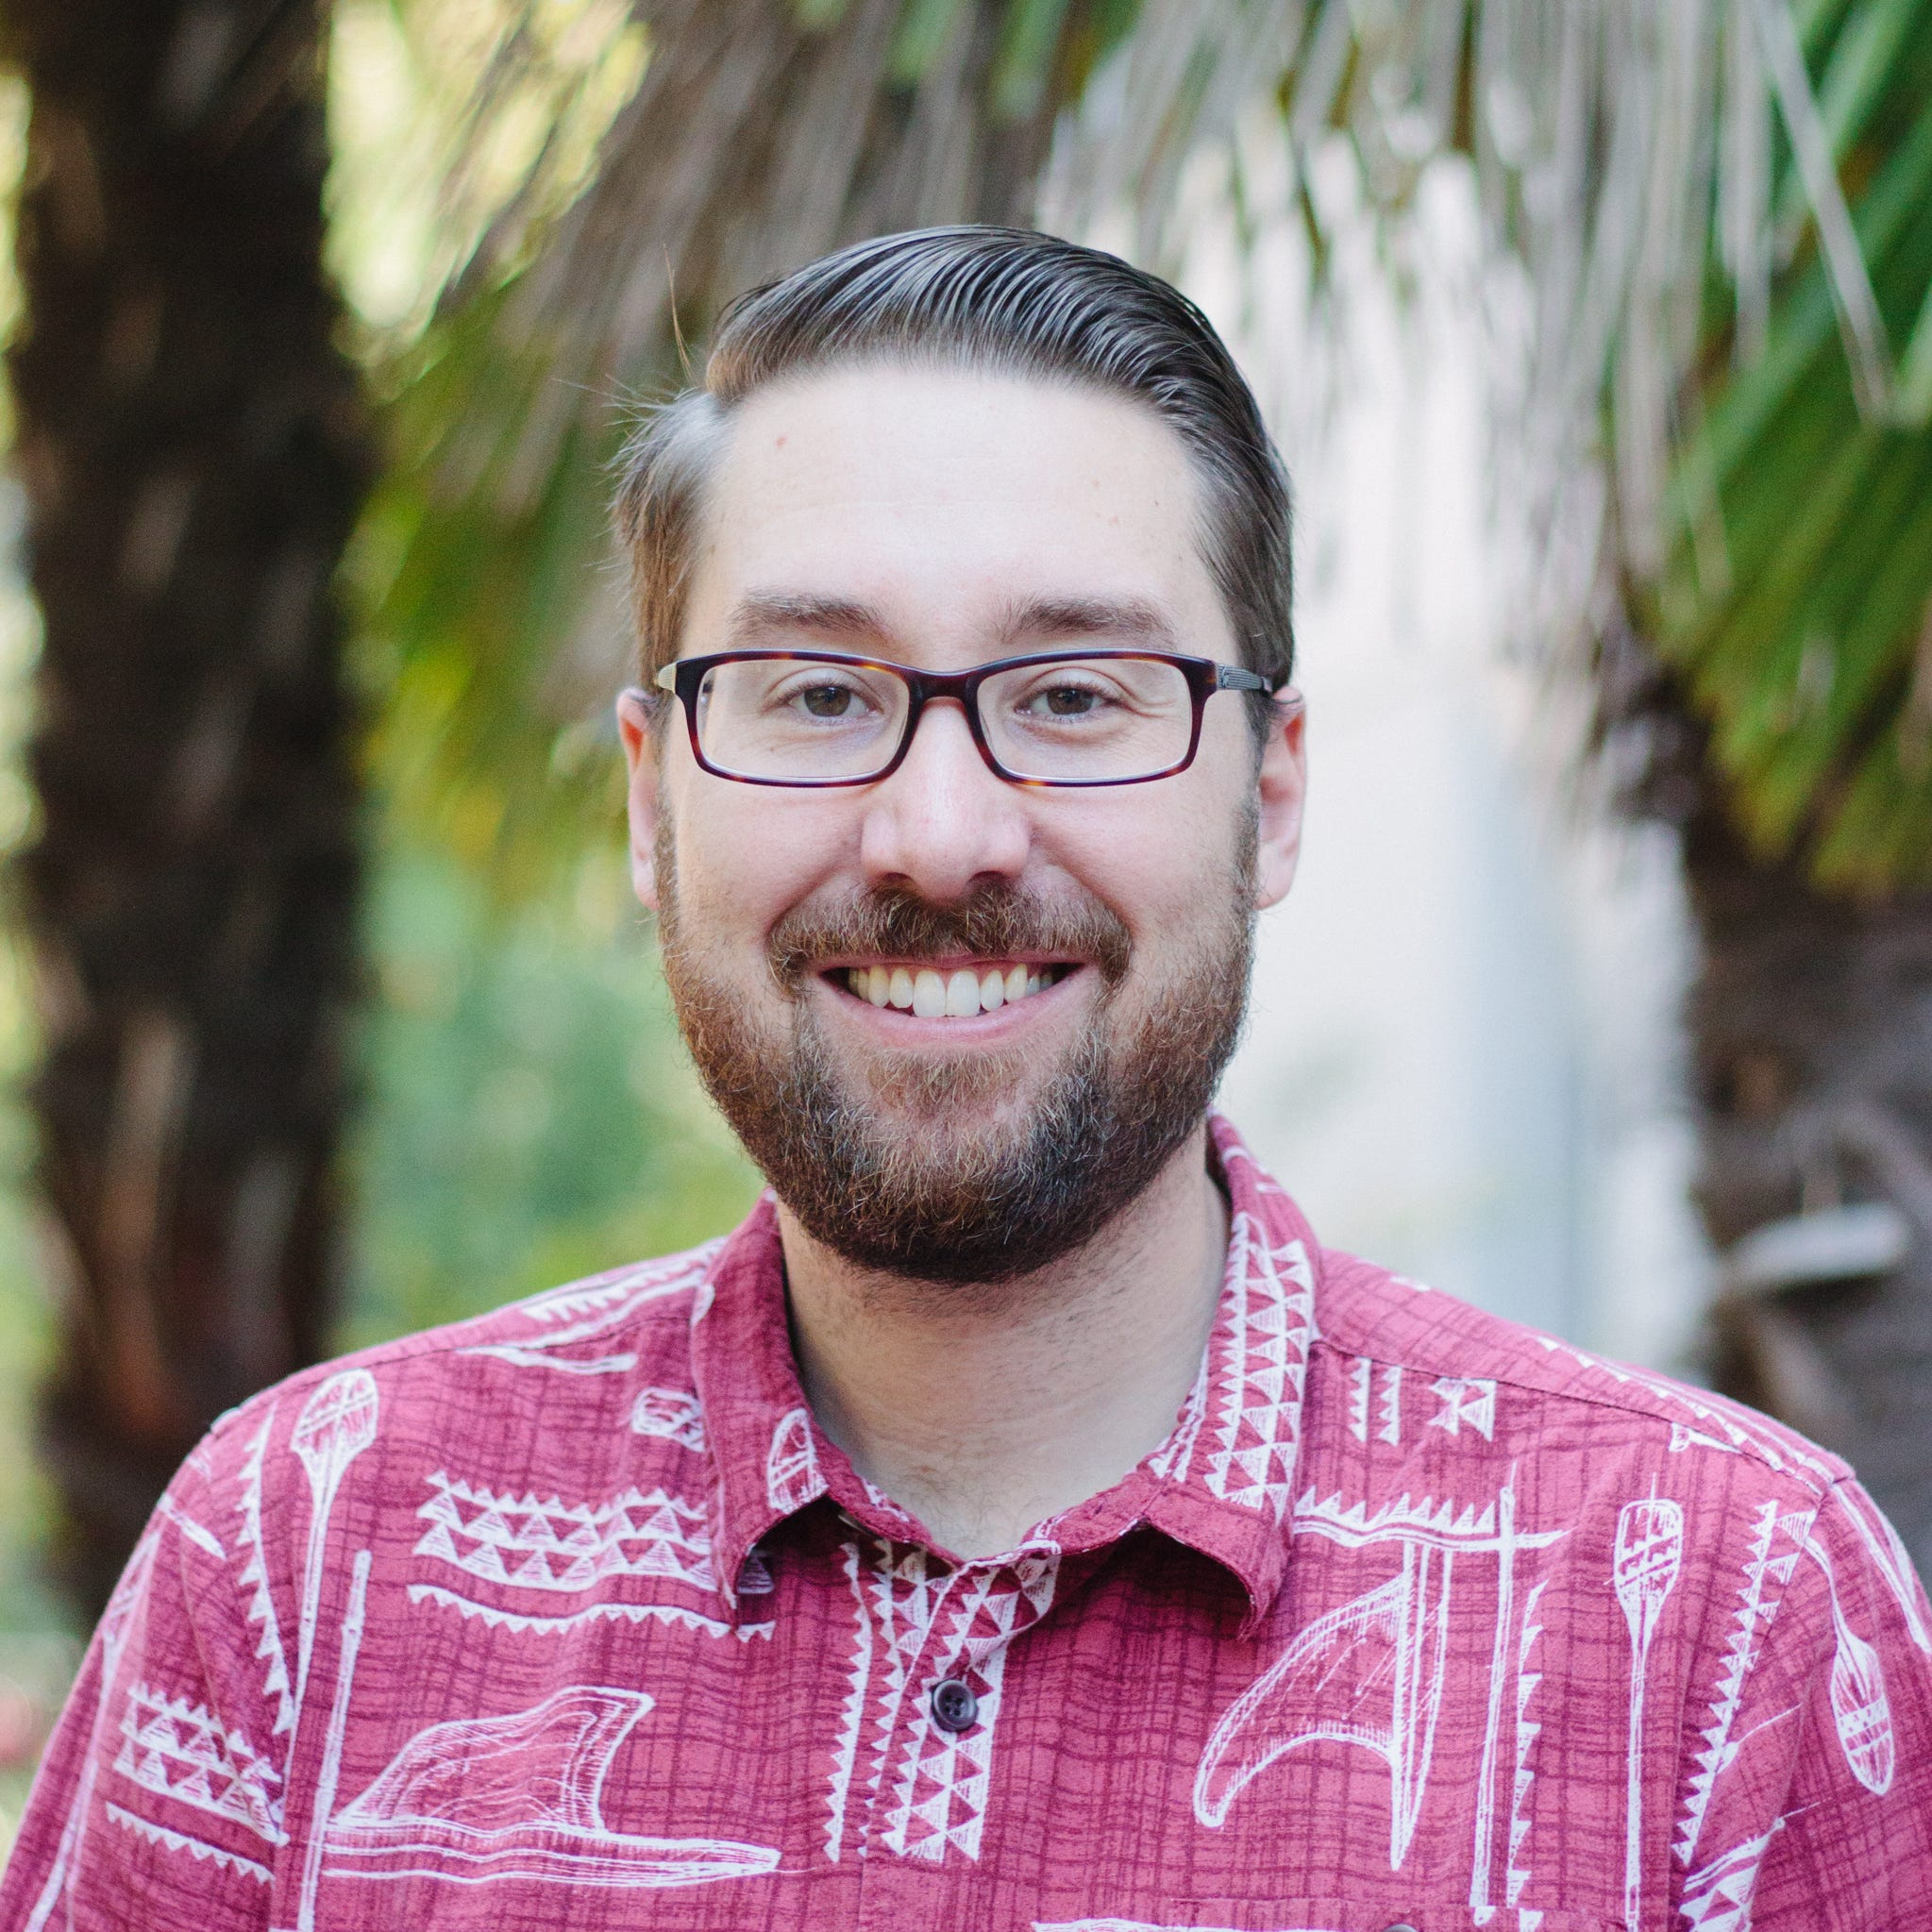 Voters care more about issues than political ideologies, says FSU research